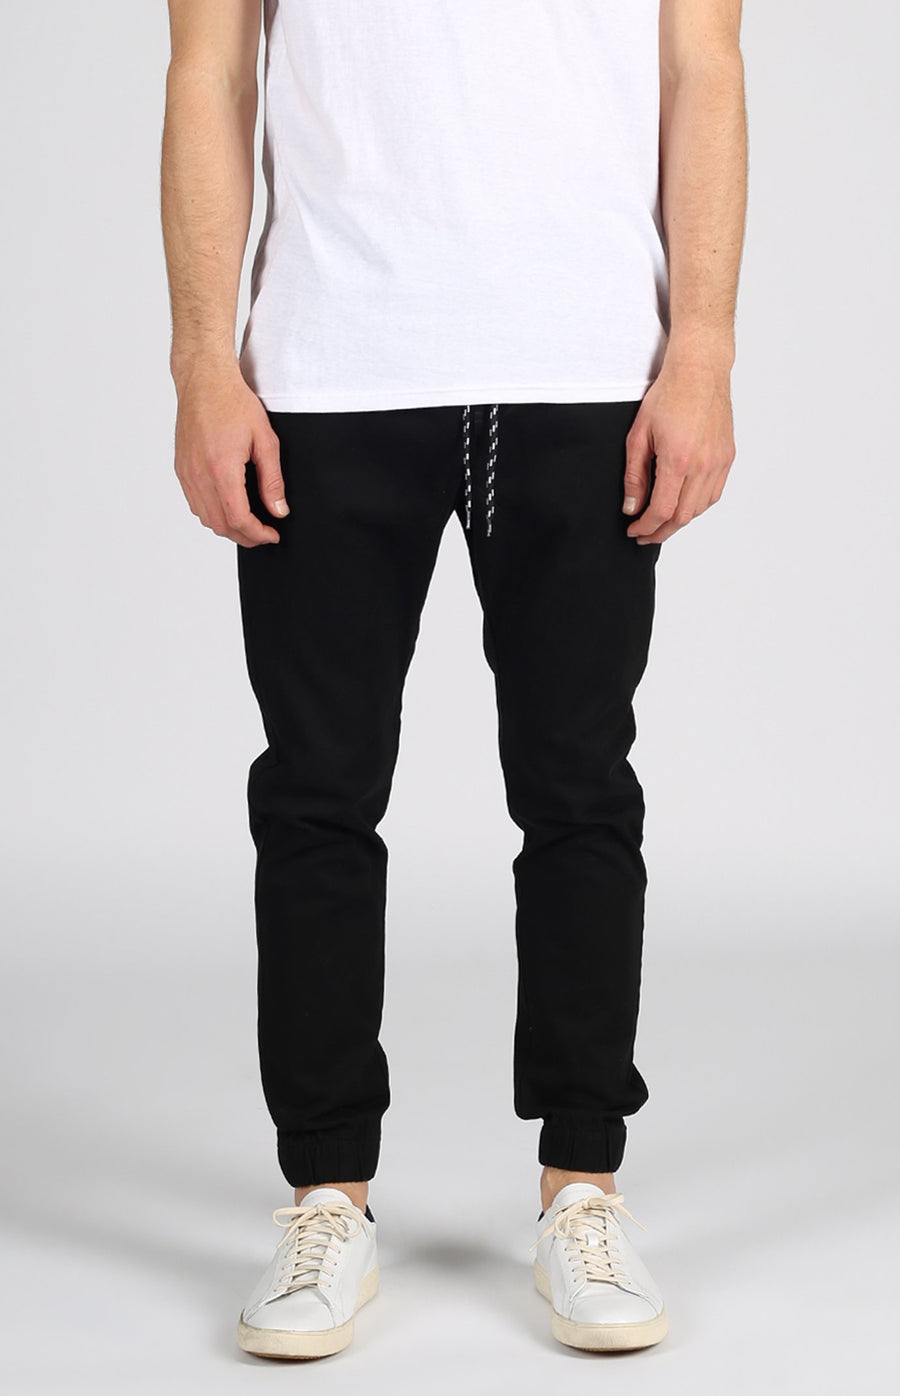 LIRA // PANTALON JOGGER WEEKDAY 2.0 ( 3 couleurs )